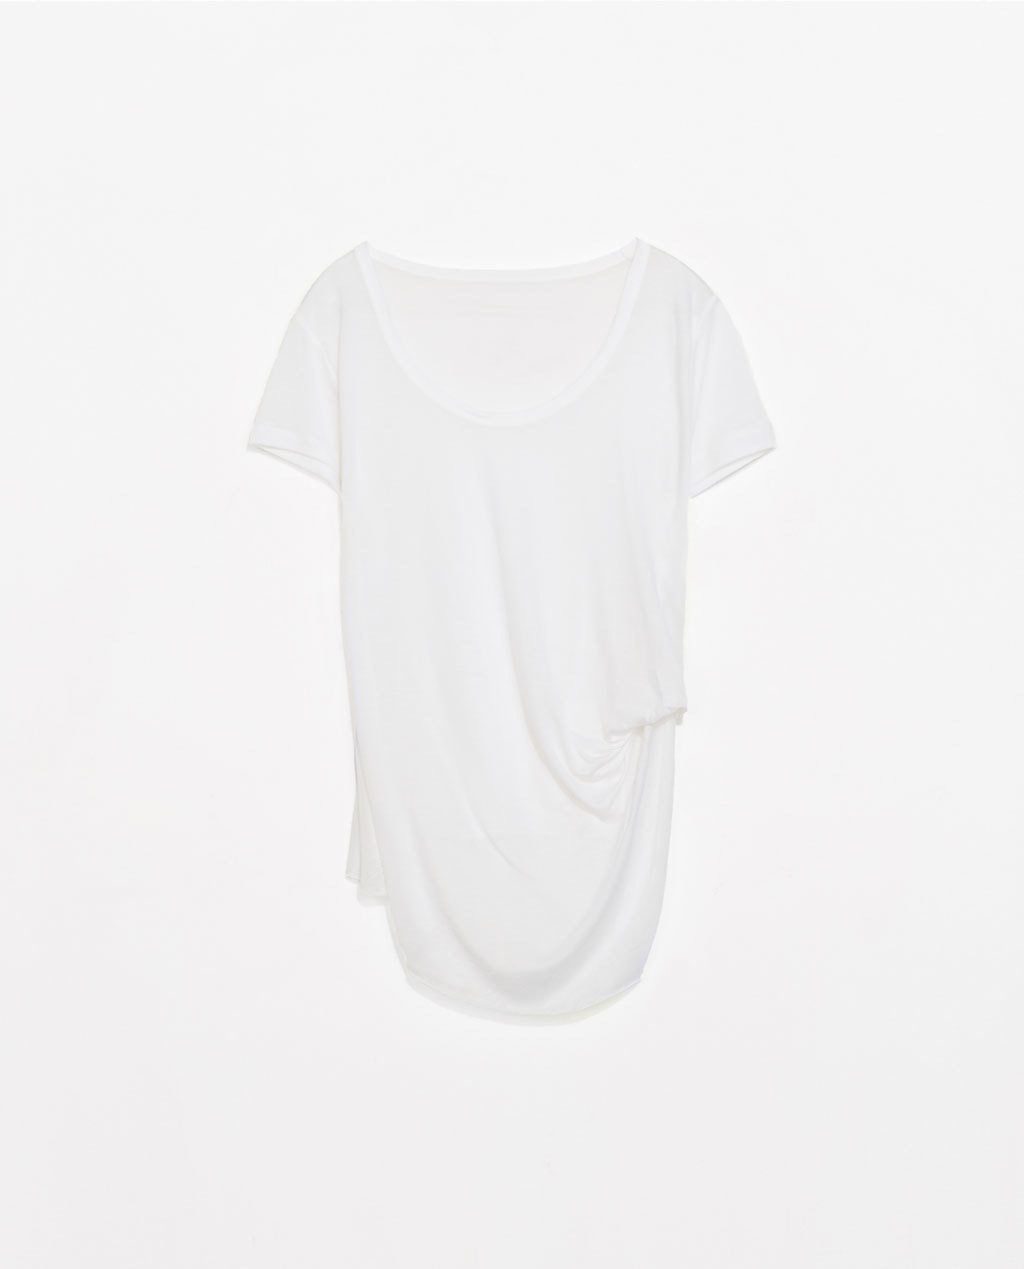 T Shirt With Side Knot - pattern: plain; style: t-shirt; predominant colour: white; occasions: casual; length: standard; neckline: scoop; fit: body skimming; sleeve length: short sleeve; sleeve style: standard; pattern type: fabric; texture group: jersey - stretchy/drapey; fibres: viscose/rayon - mix; season: s/s 2014